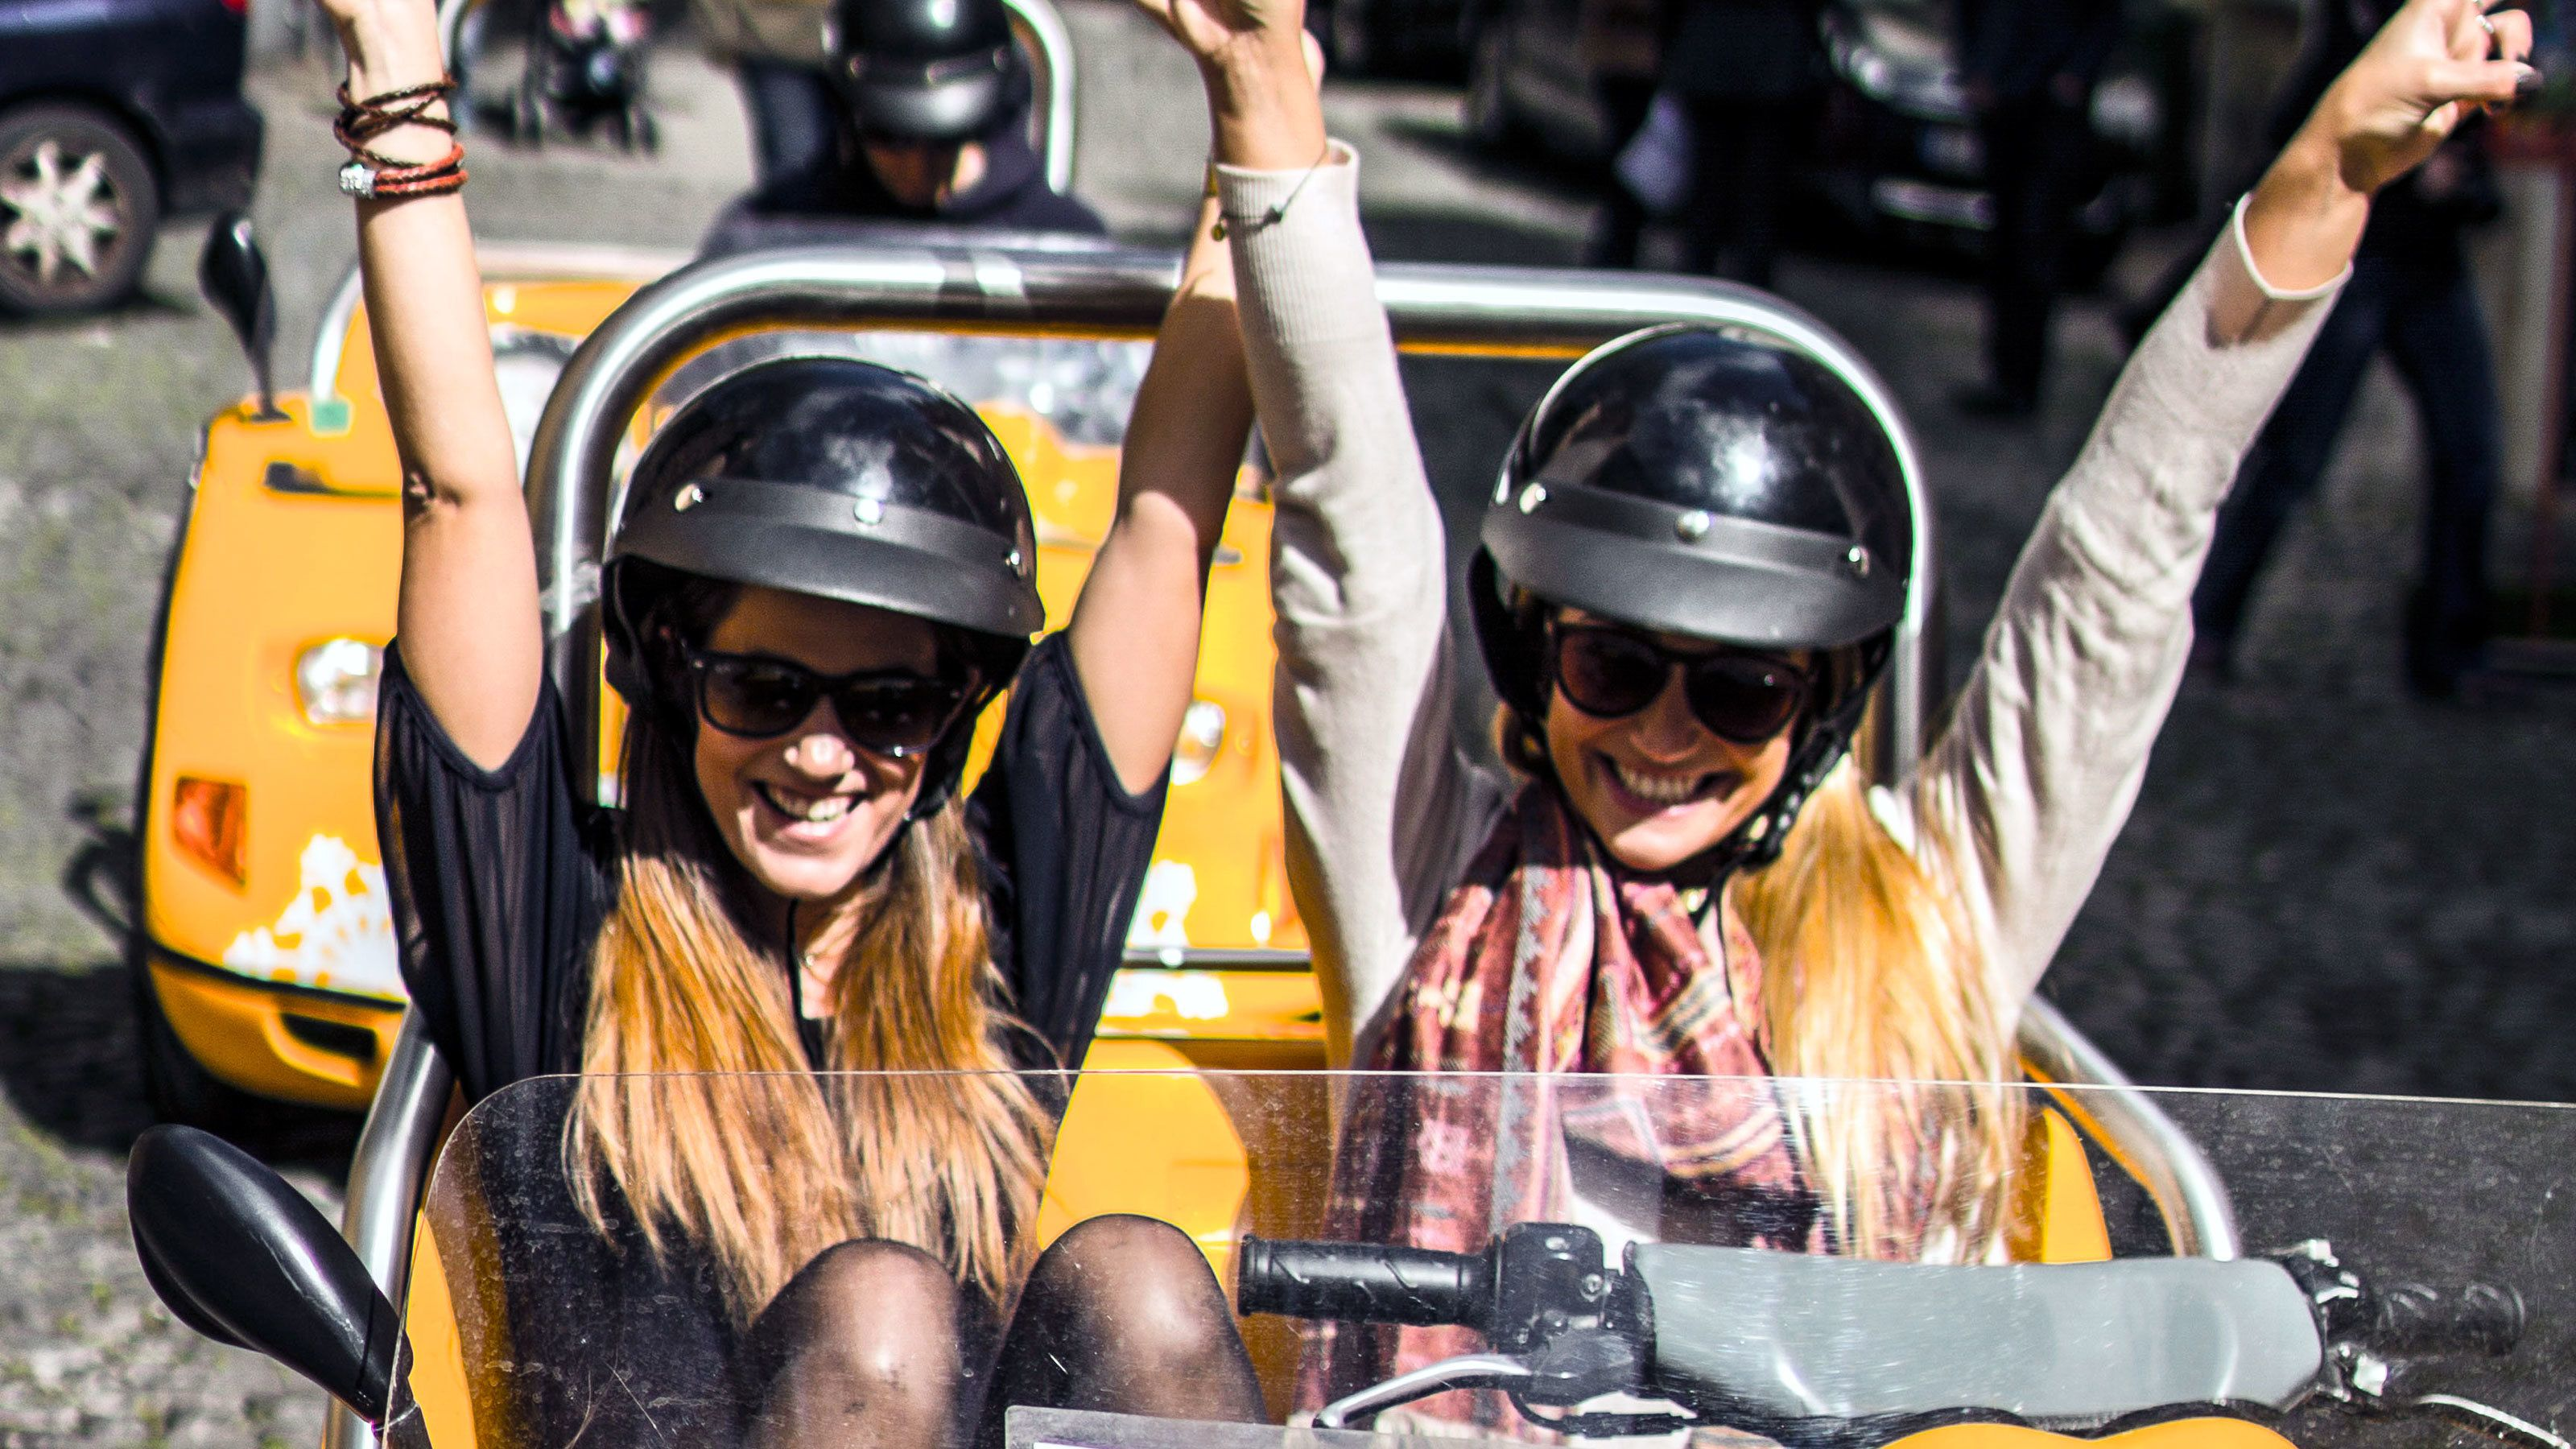 women in Go Car ready to explore the city of Lisbon